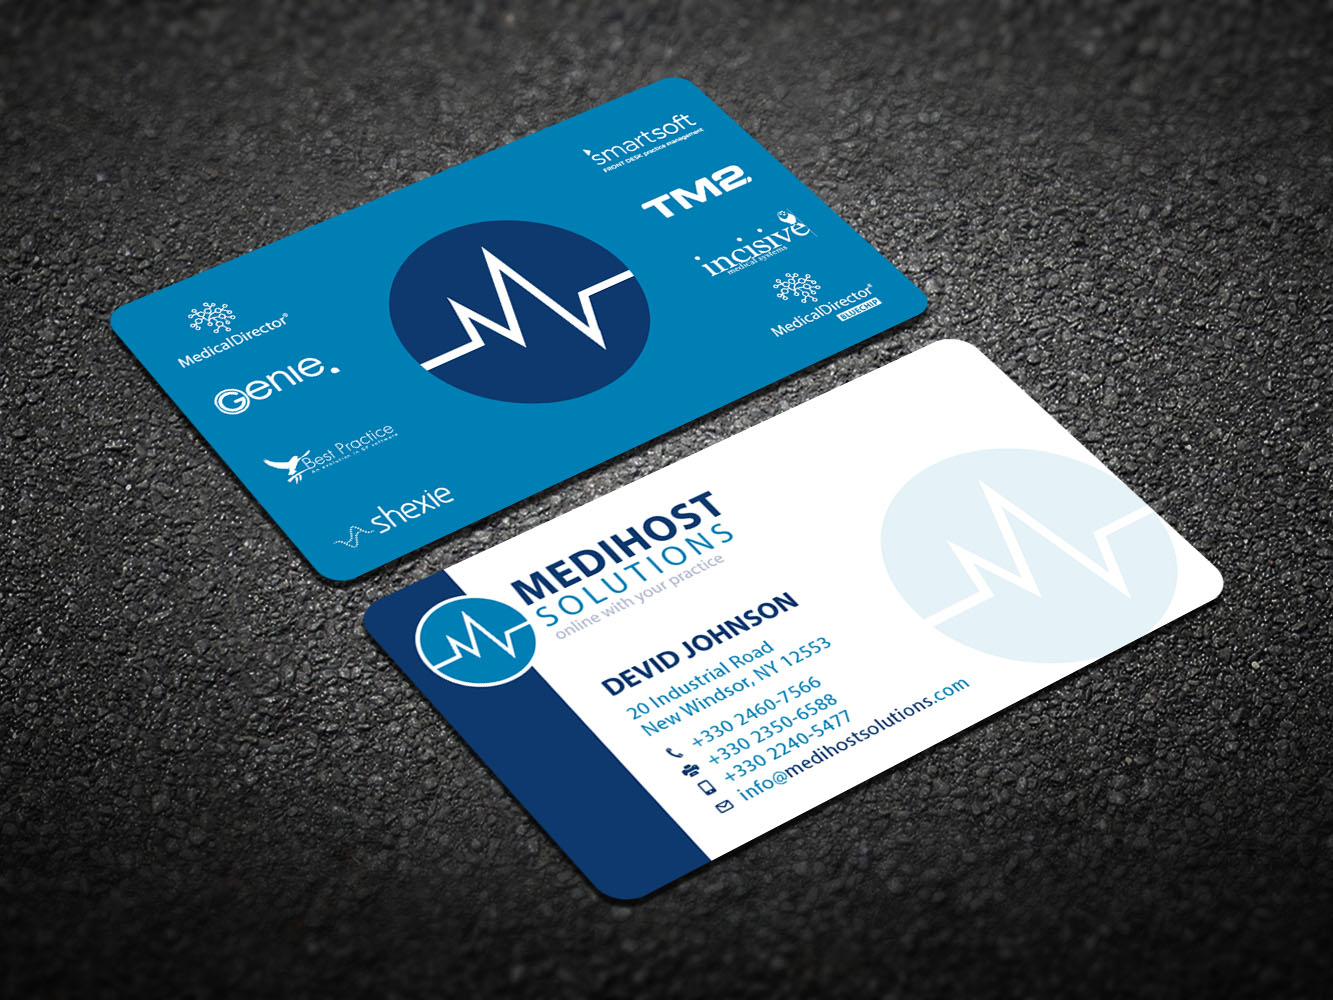 modern, upmarket, business business card design for a company bybusiness card design by design xeneration for this project design 11778226